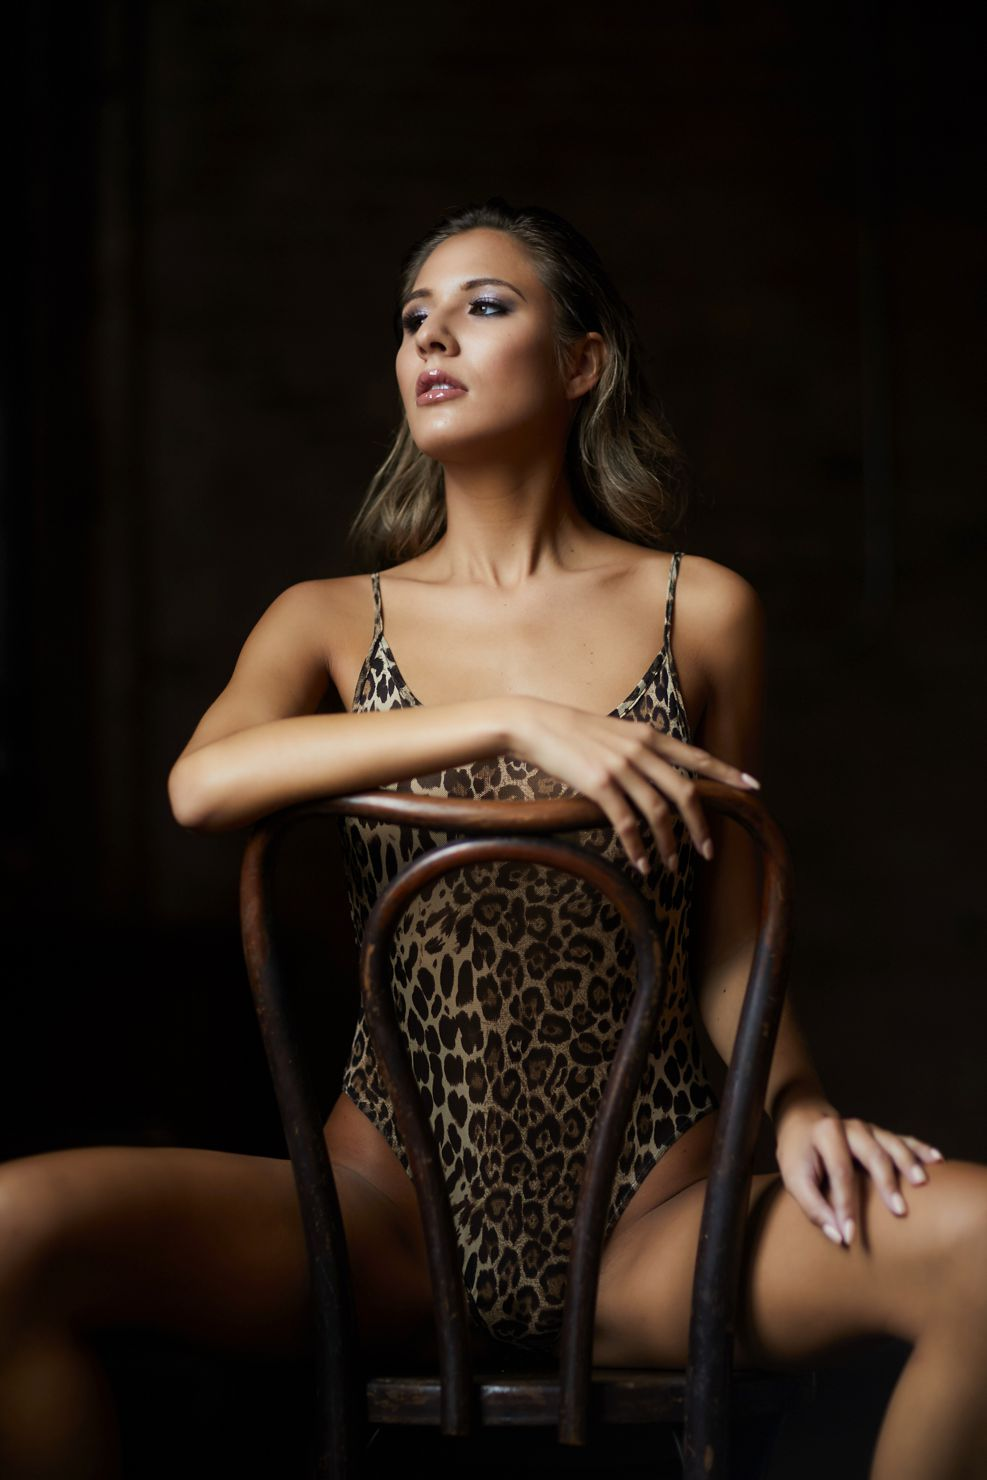 chicago boudoir photography 1 - Top 3 Reasons Why You Should Have a Boudoir Session.